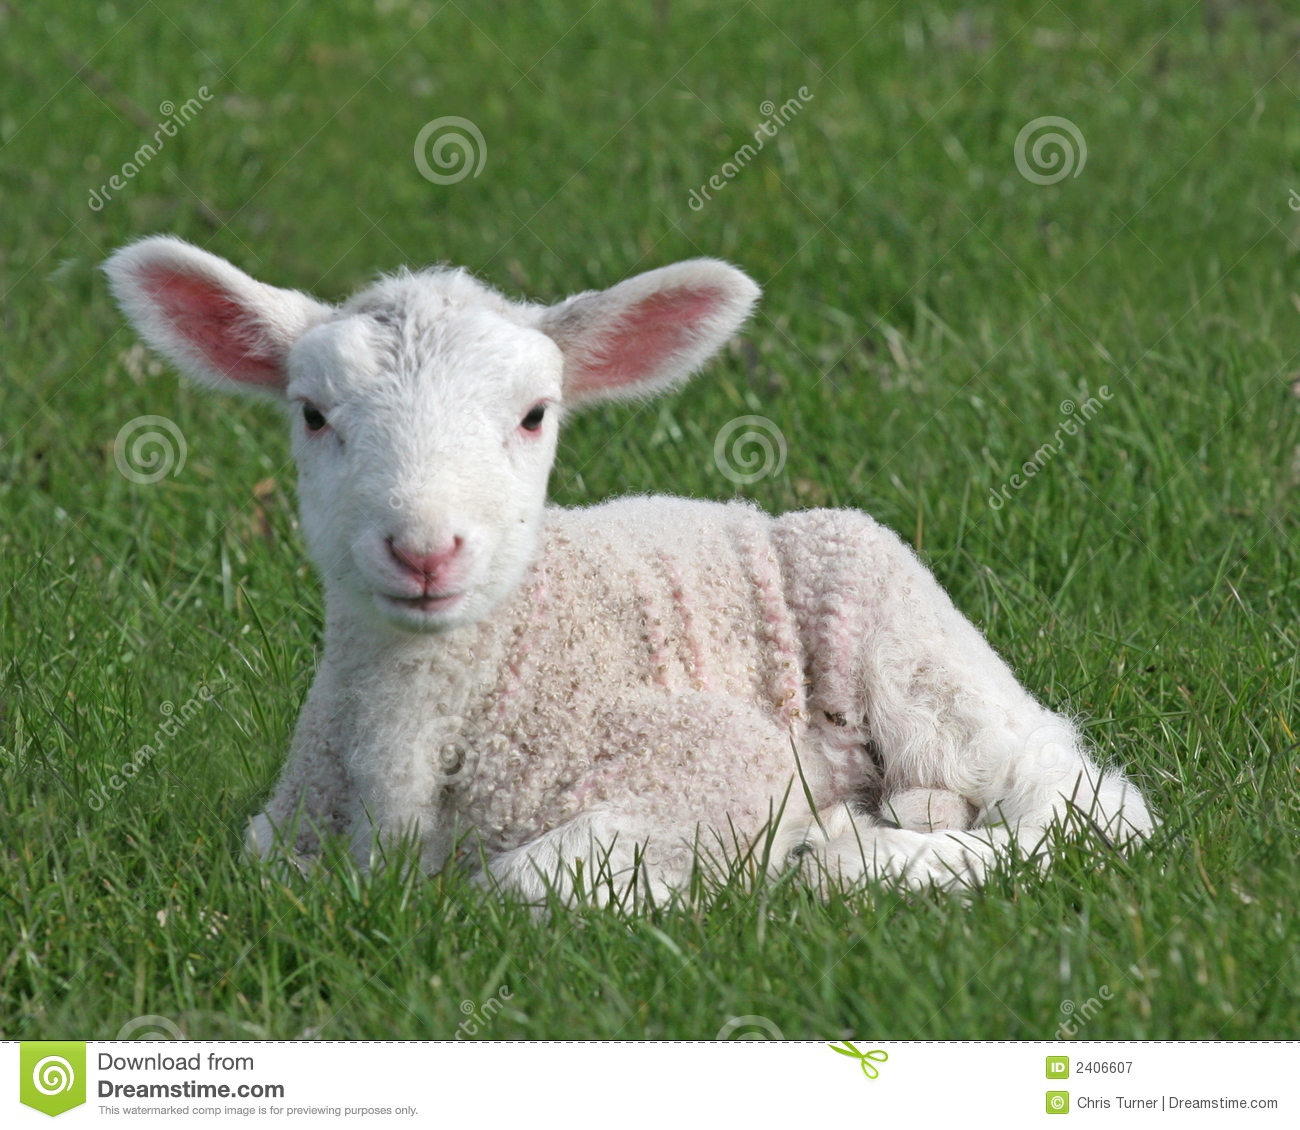 Lamb stock image. Image of cute, sheep, young, newborn ...